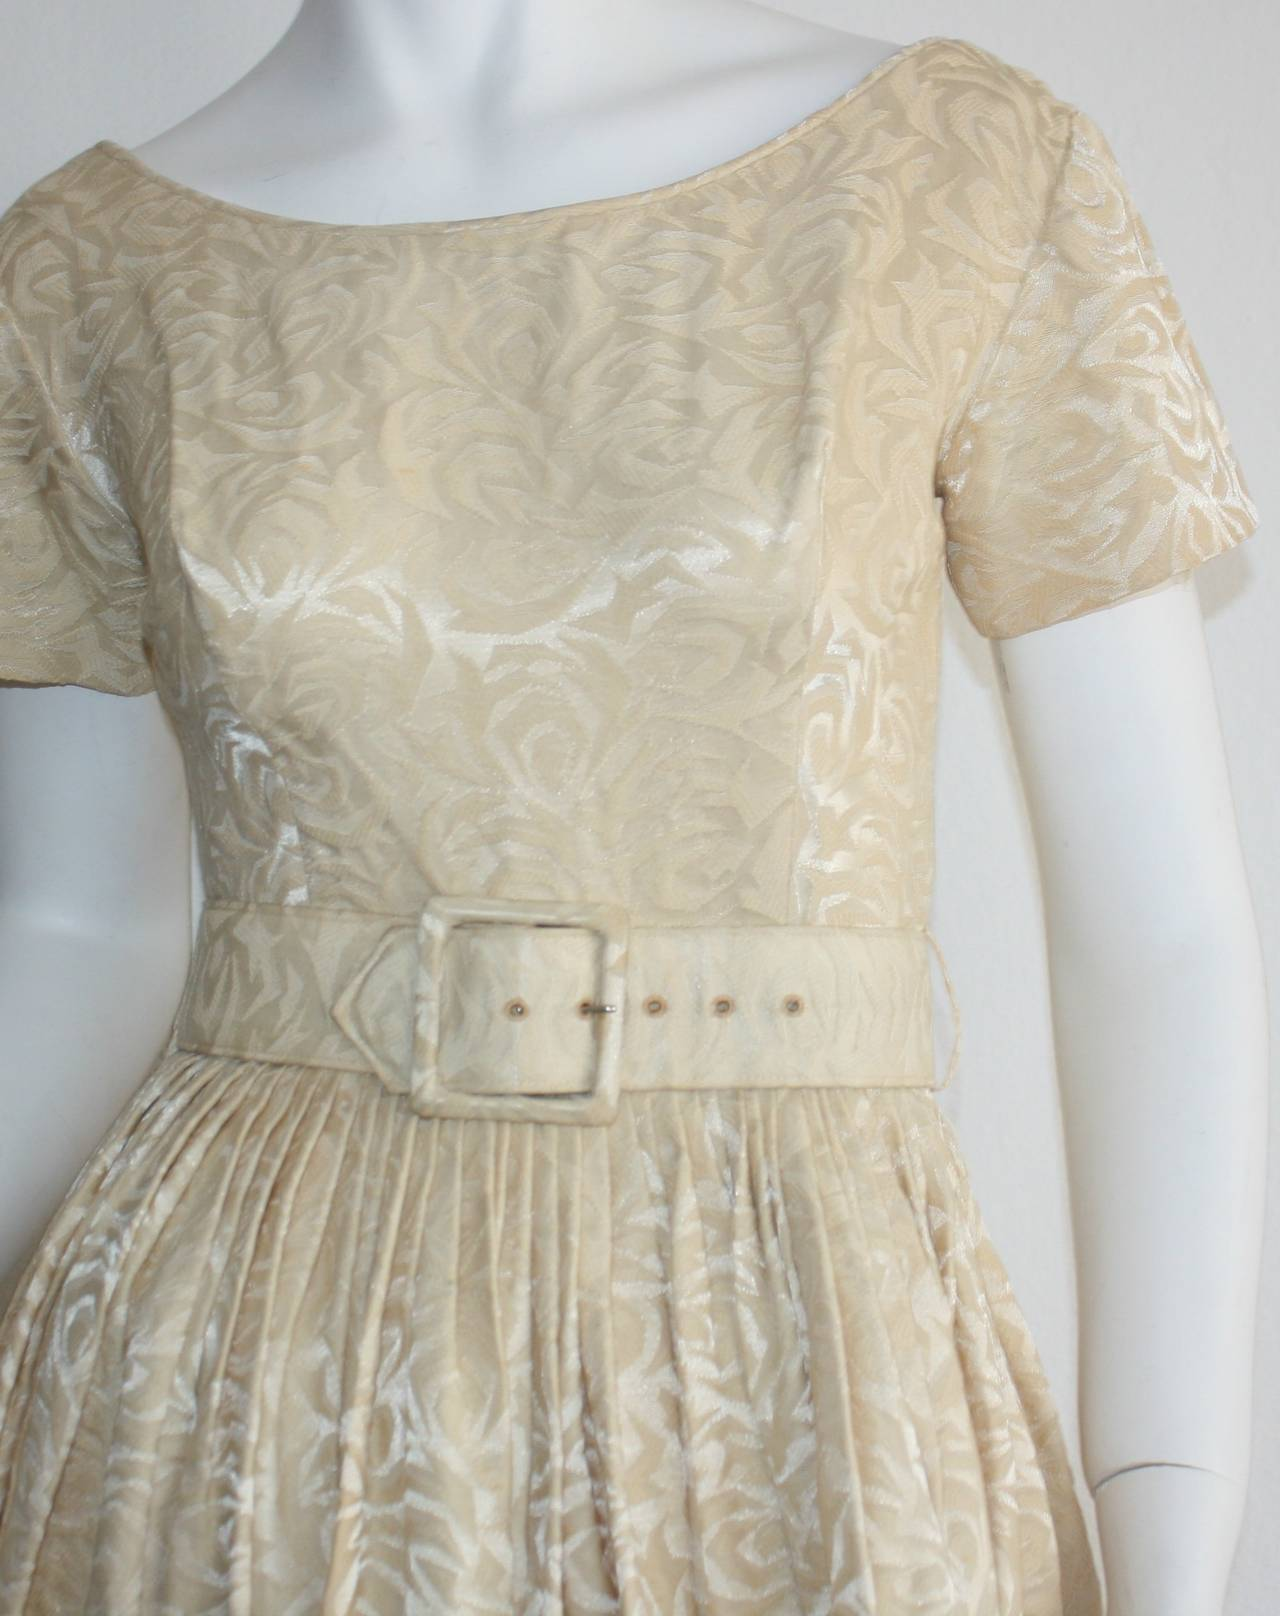 1950s Gigi Young Ivory Floral Silk Dress w/ Belt and Full Skirt In Excellent Condition For Sale In San Francisco, CA